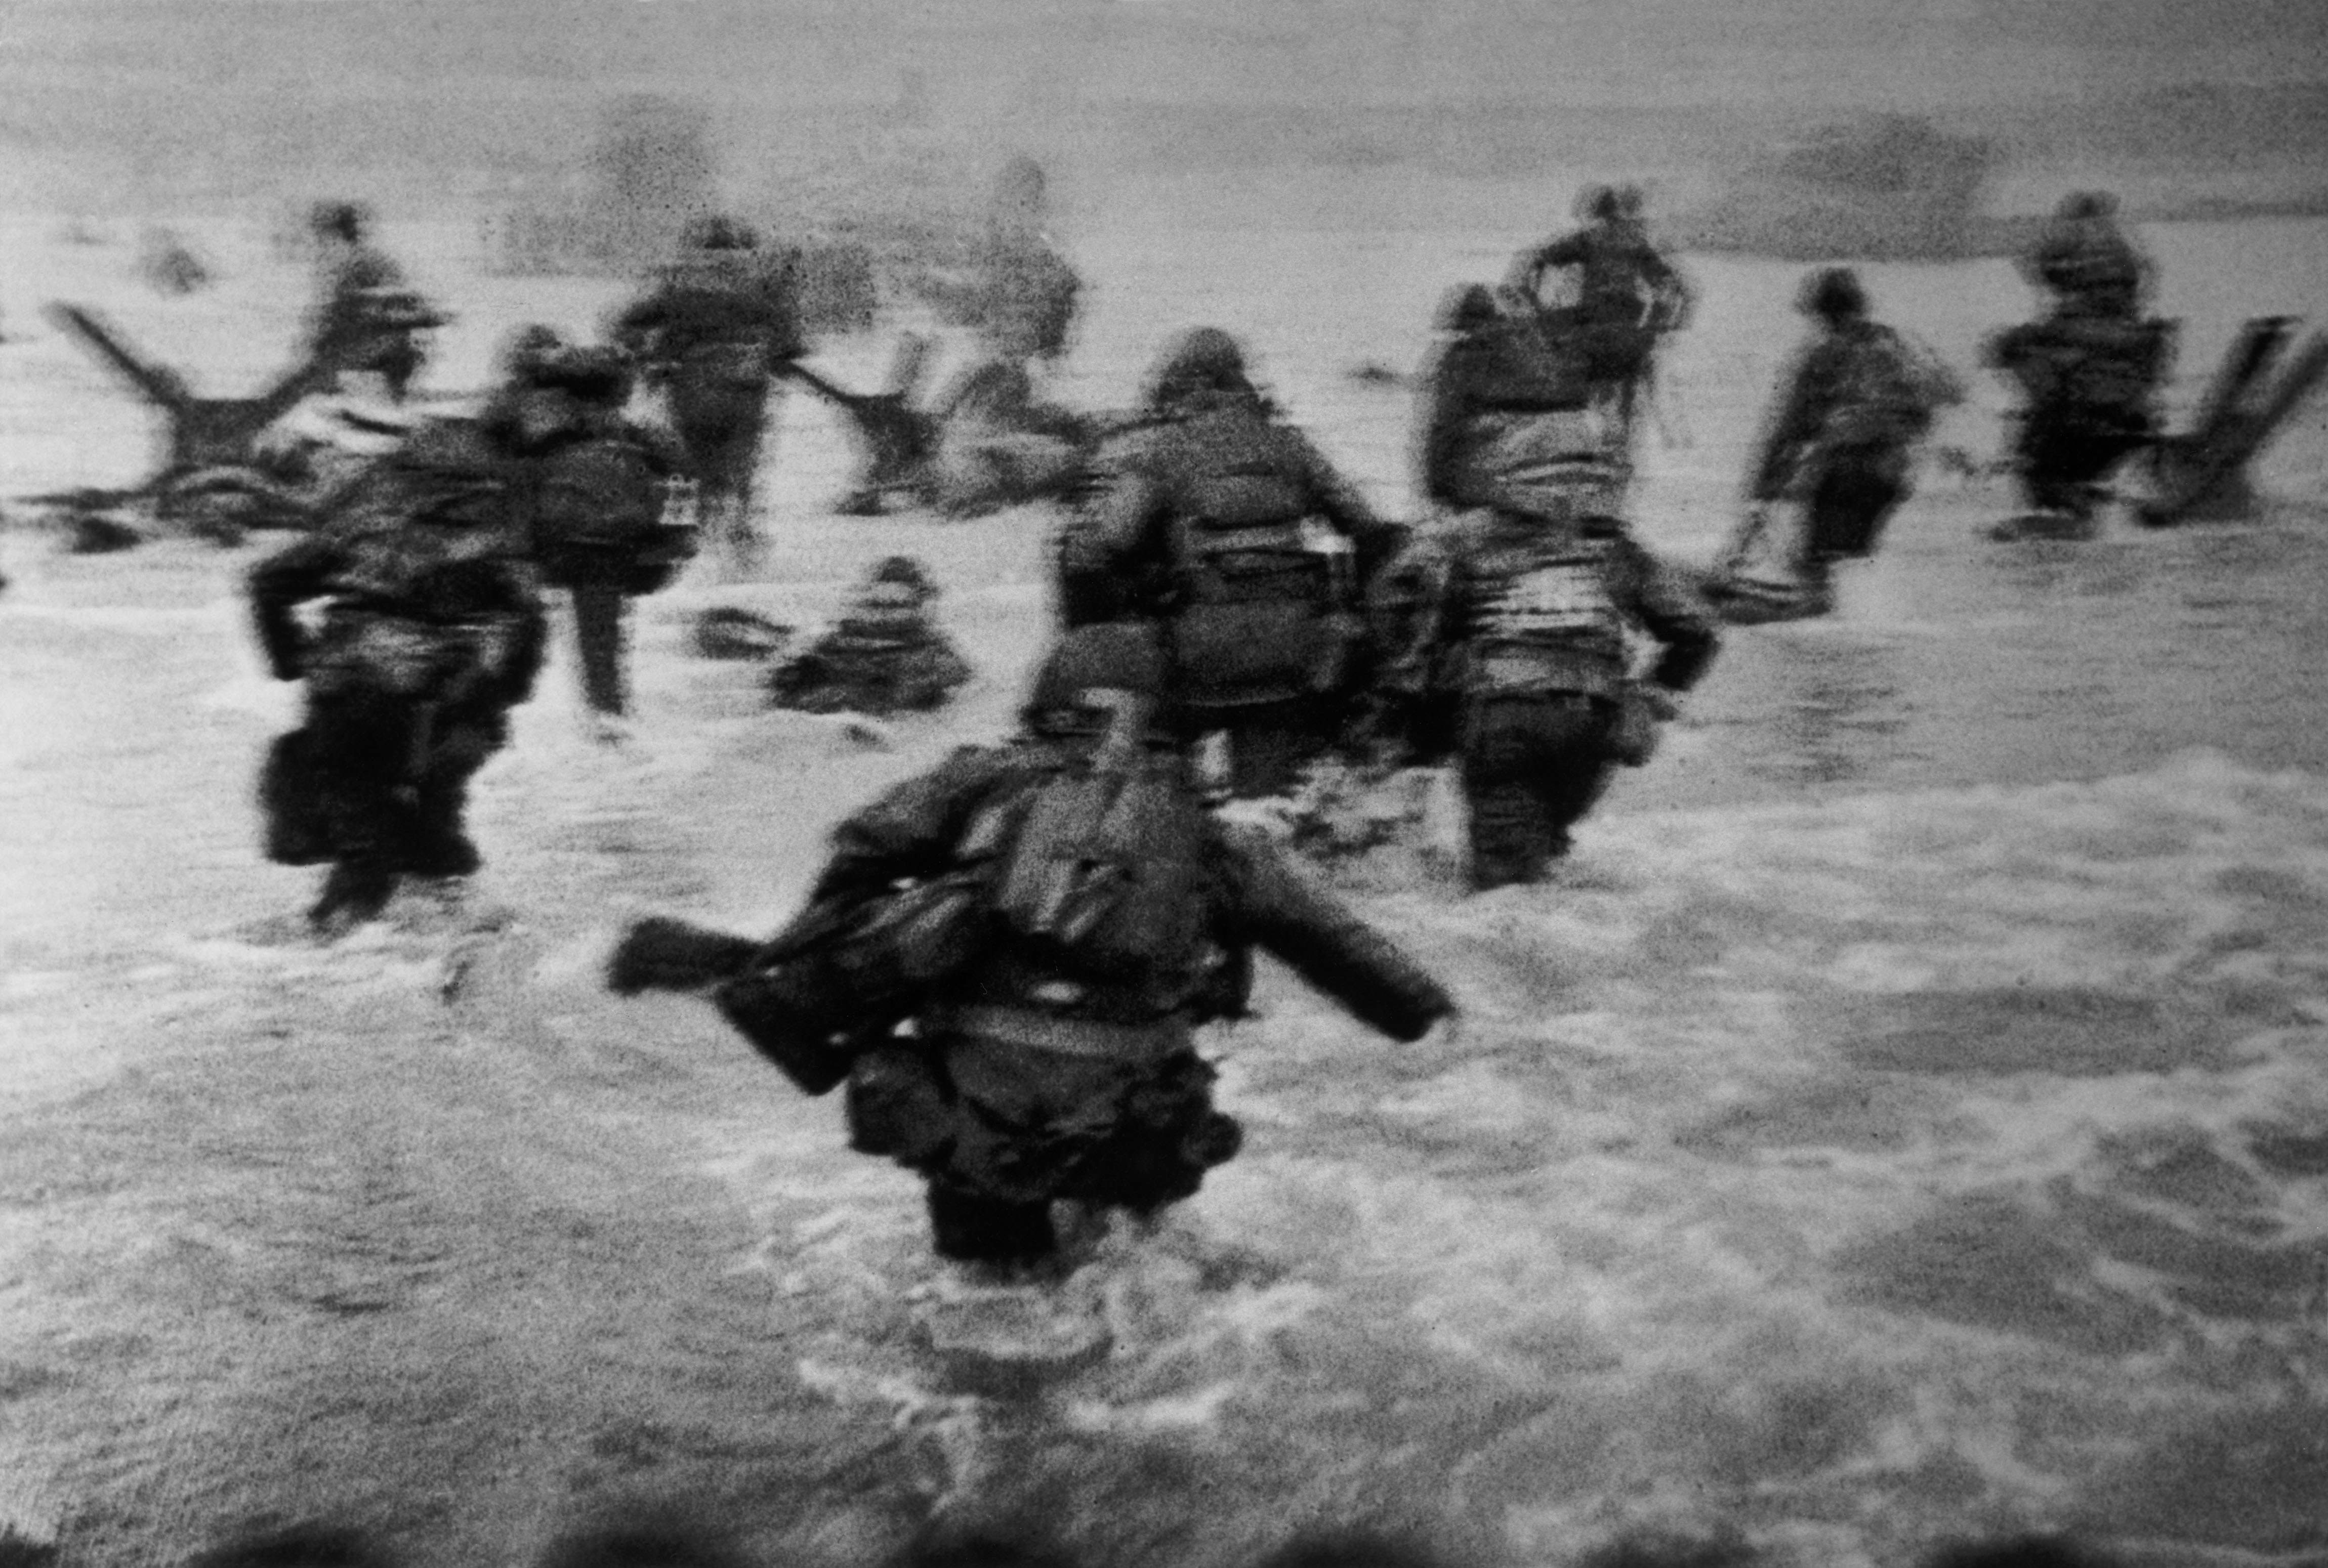 soldiers War normandy grayscale HD Wallpaper